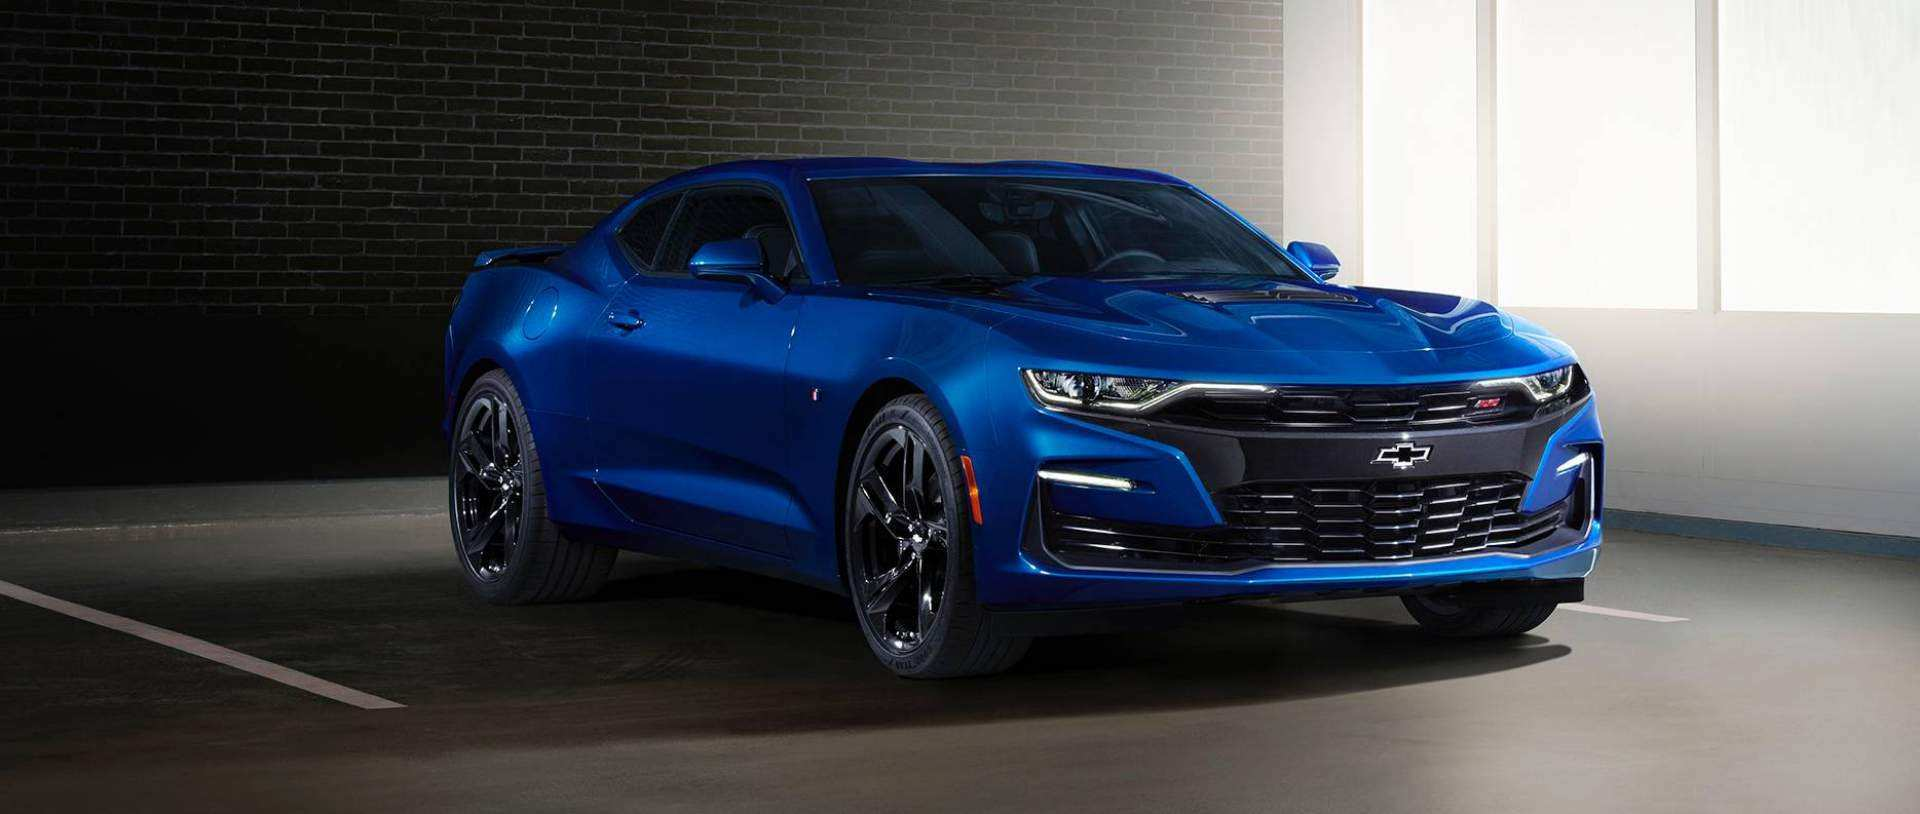 72 New 2020 The Camaro Ss Redesign by 2020 The Camaro Ss